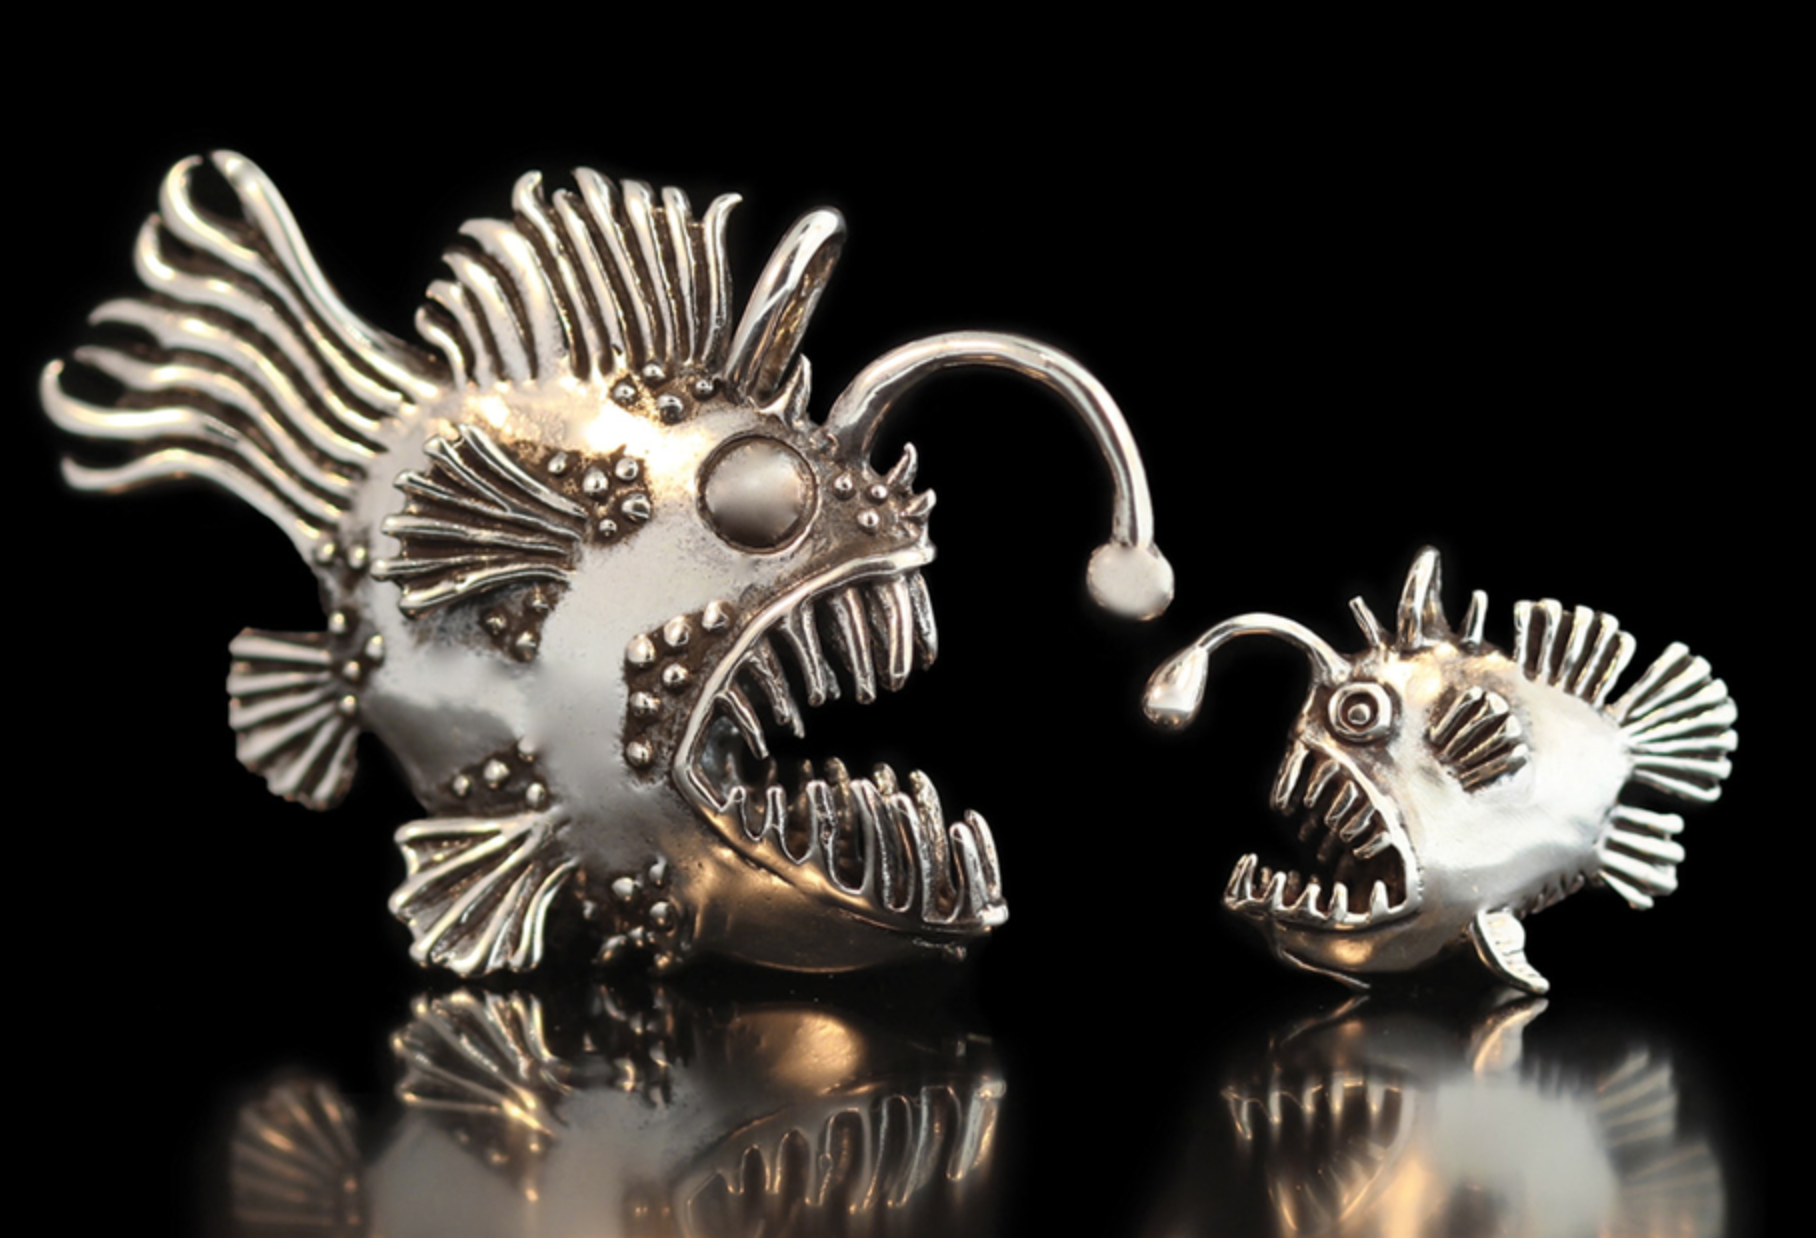 Scott Macklin - All pieces are original designs hand sculpted in wax then centrifugally cast using the lost wax method in either 14 ct gold sterling silver or jewelers bronze then antiqued , polished to show detail